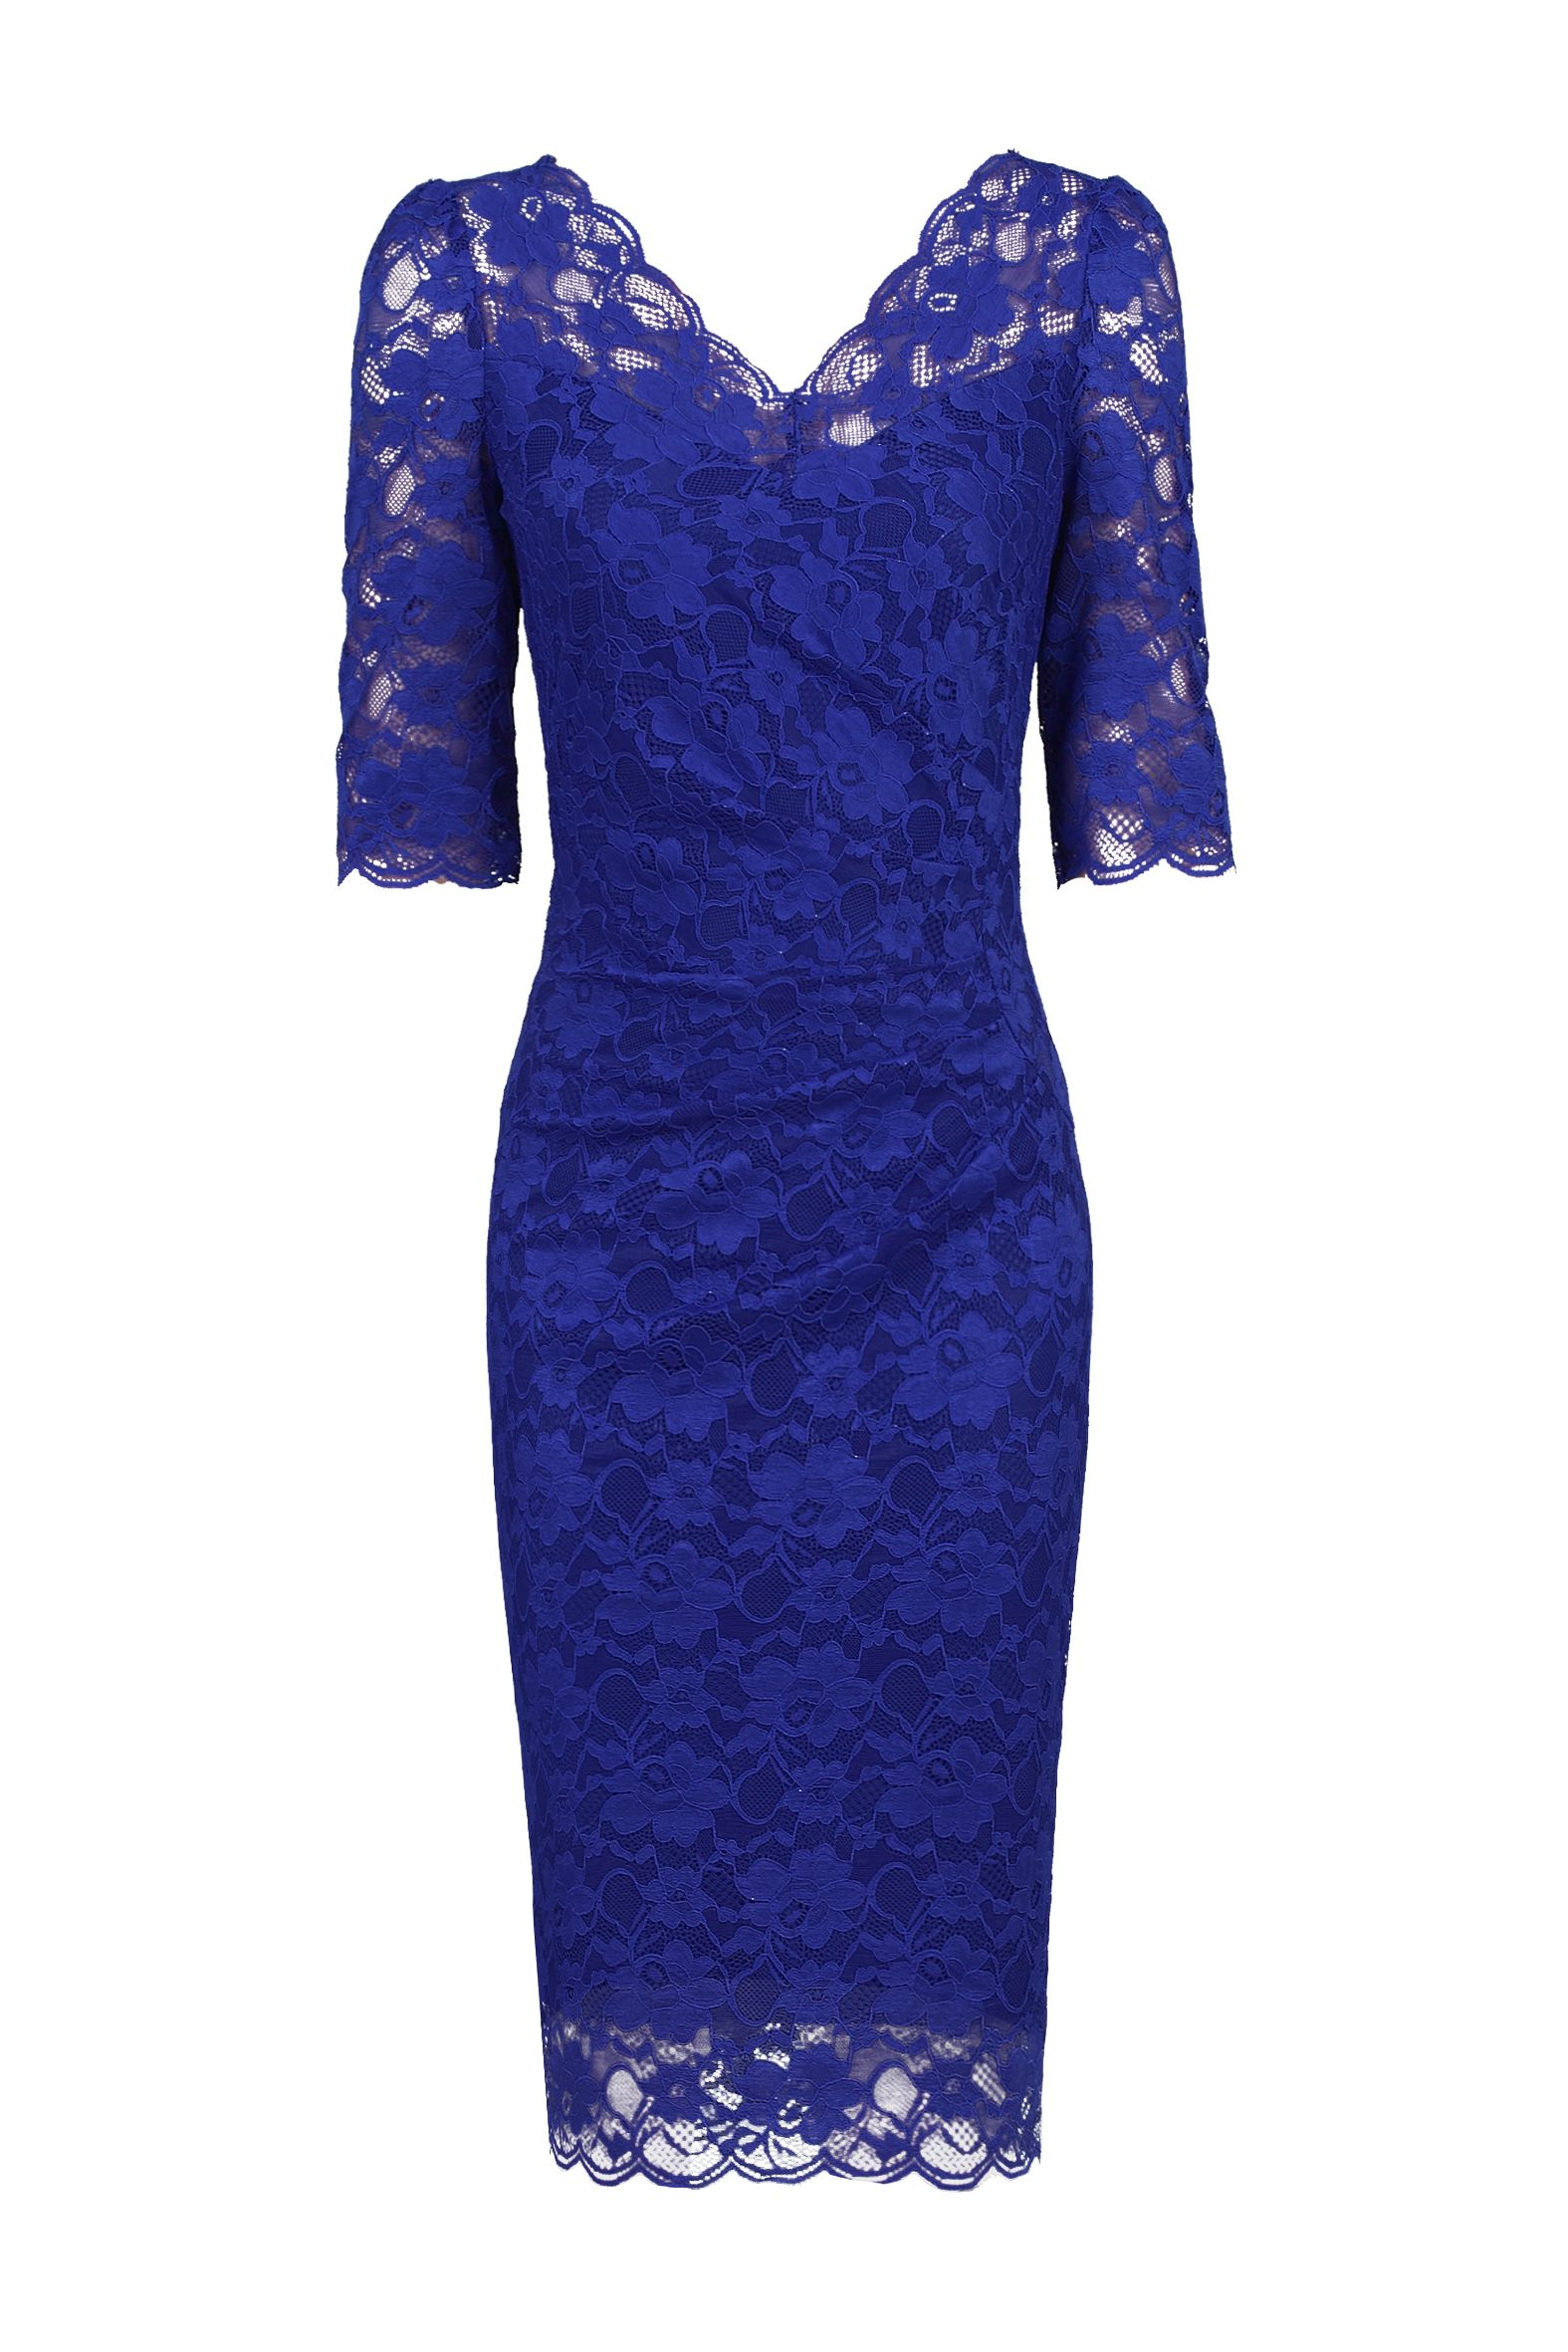 Jolie Moi 3/4 Sleeve Scalloped Lace Dress, Royal Blue